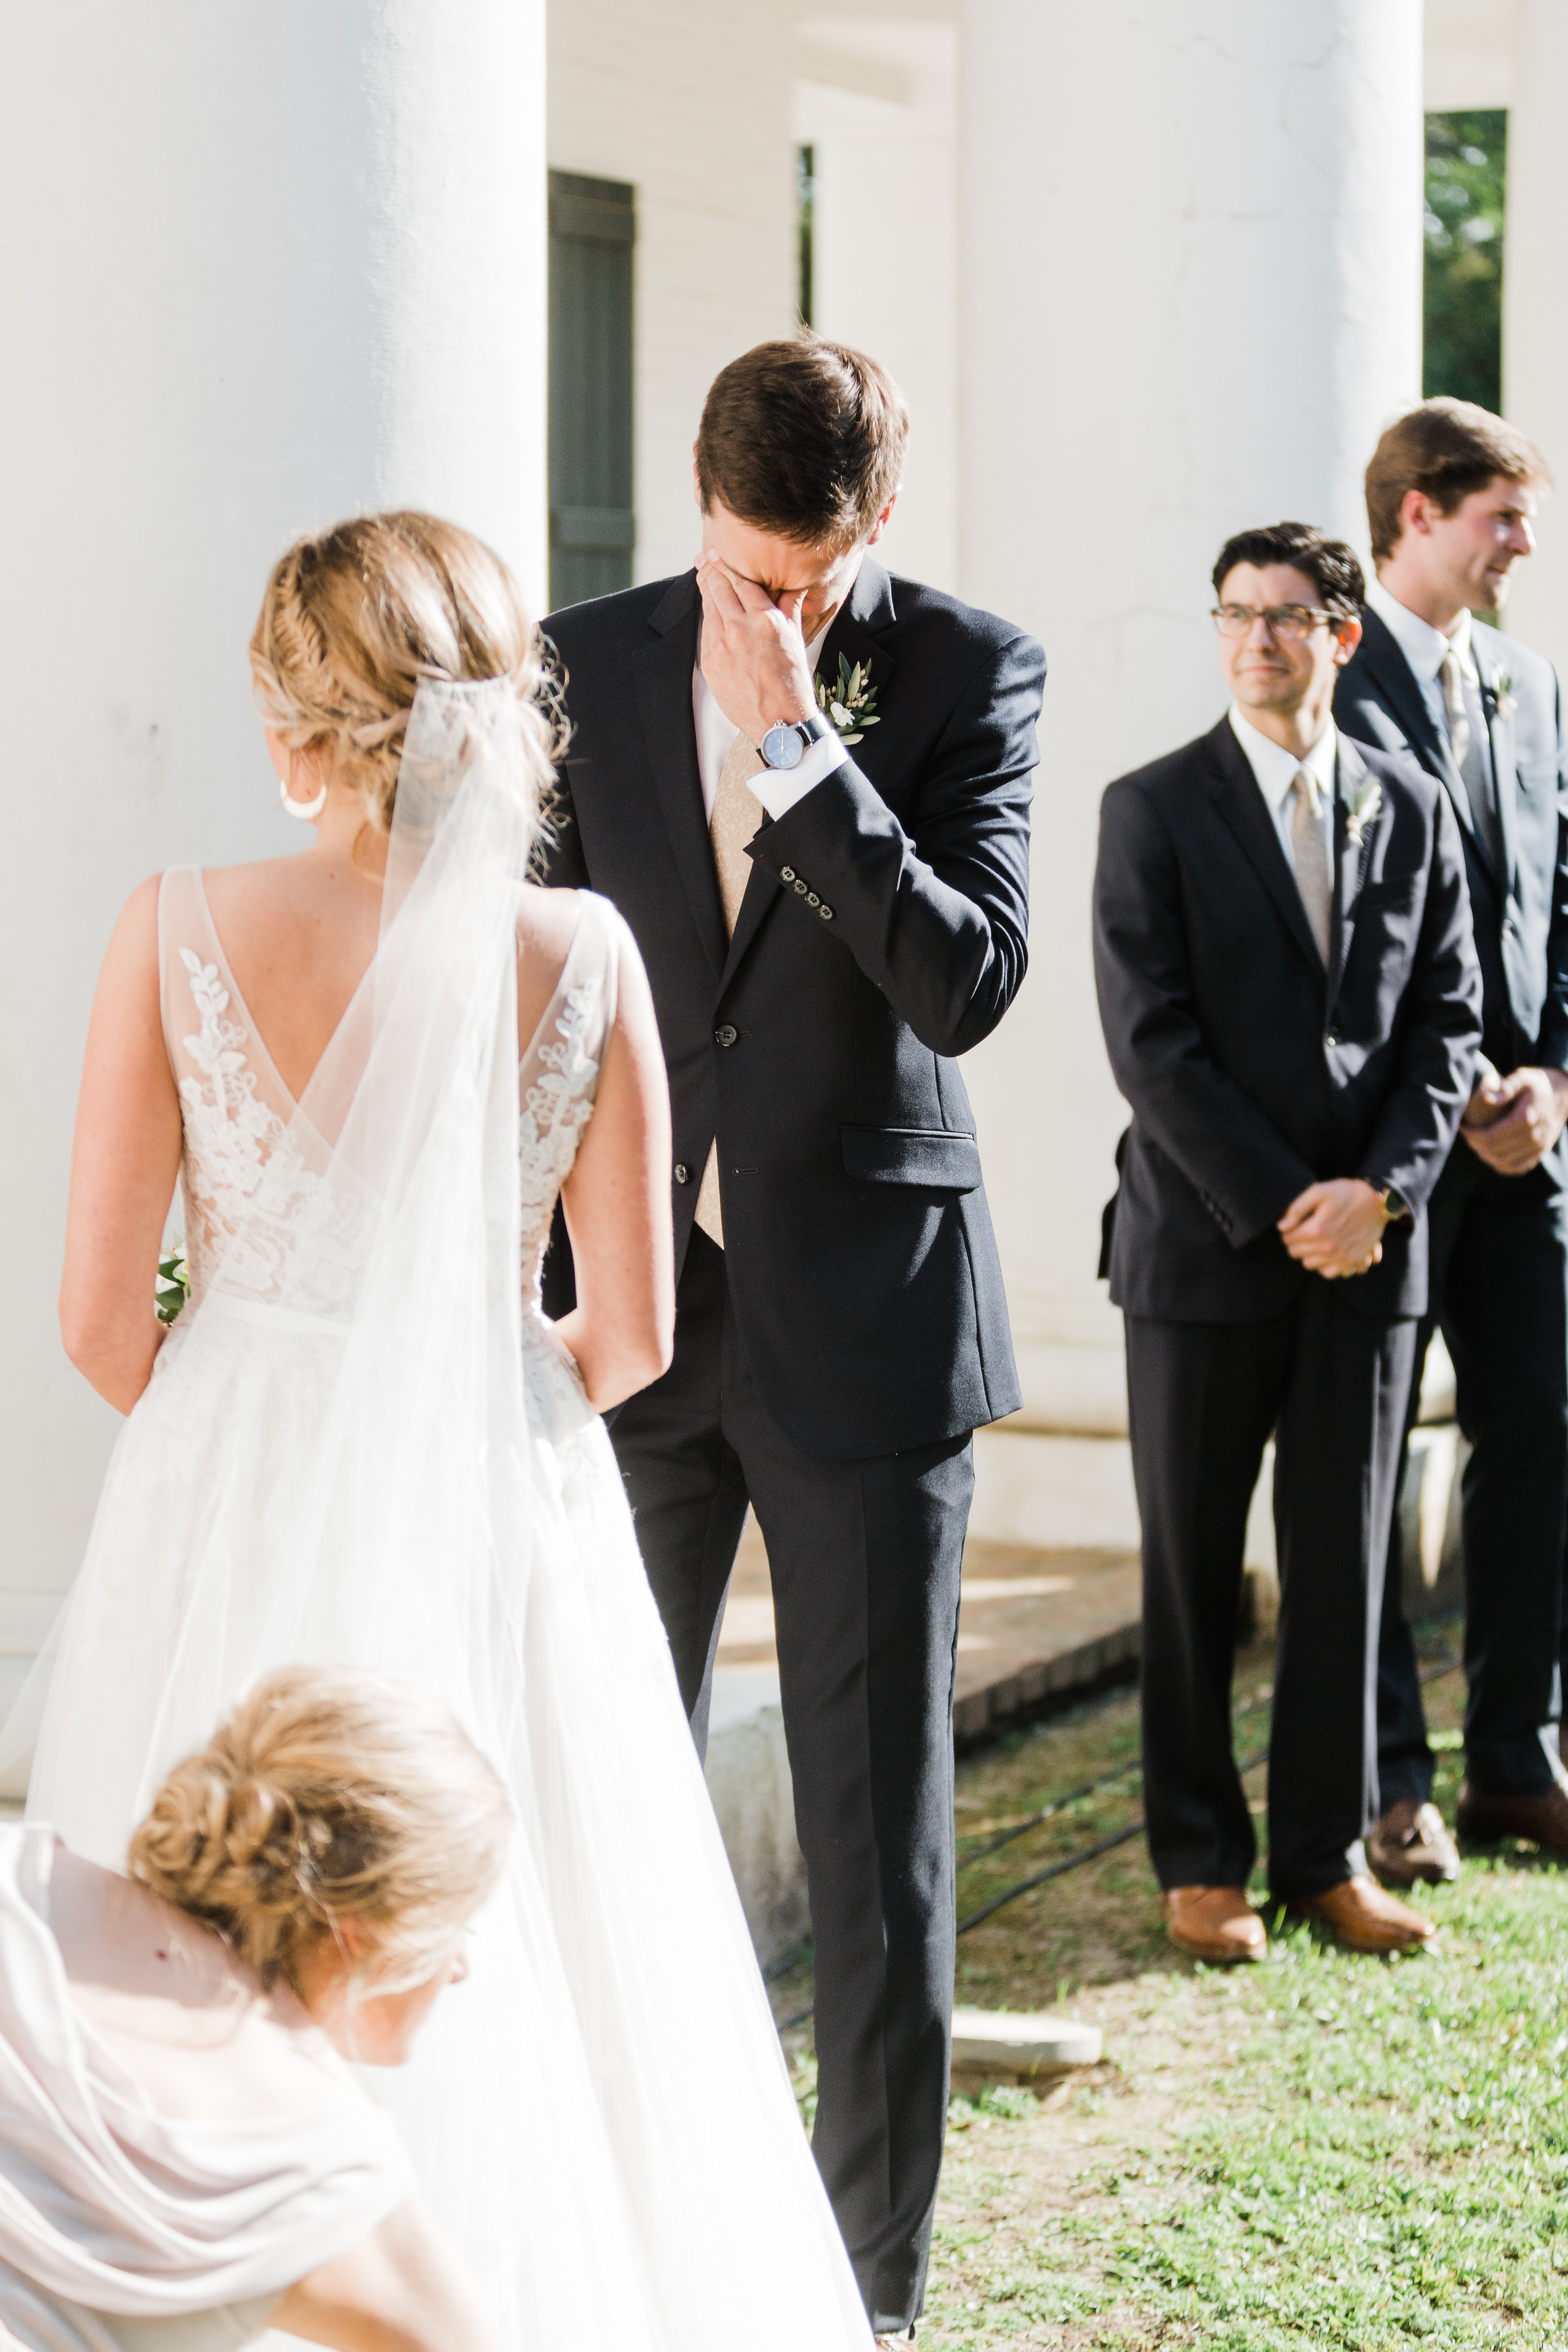 Southern Fete, Southern Wedding, Bride and Groom Ceremony, Carolynn Seibert Photography